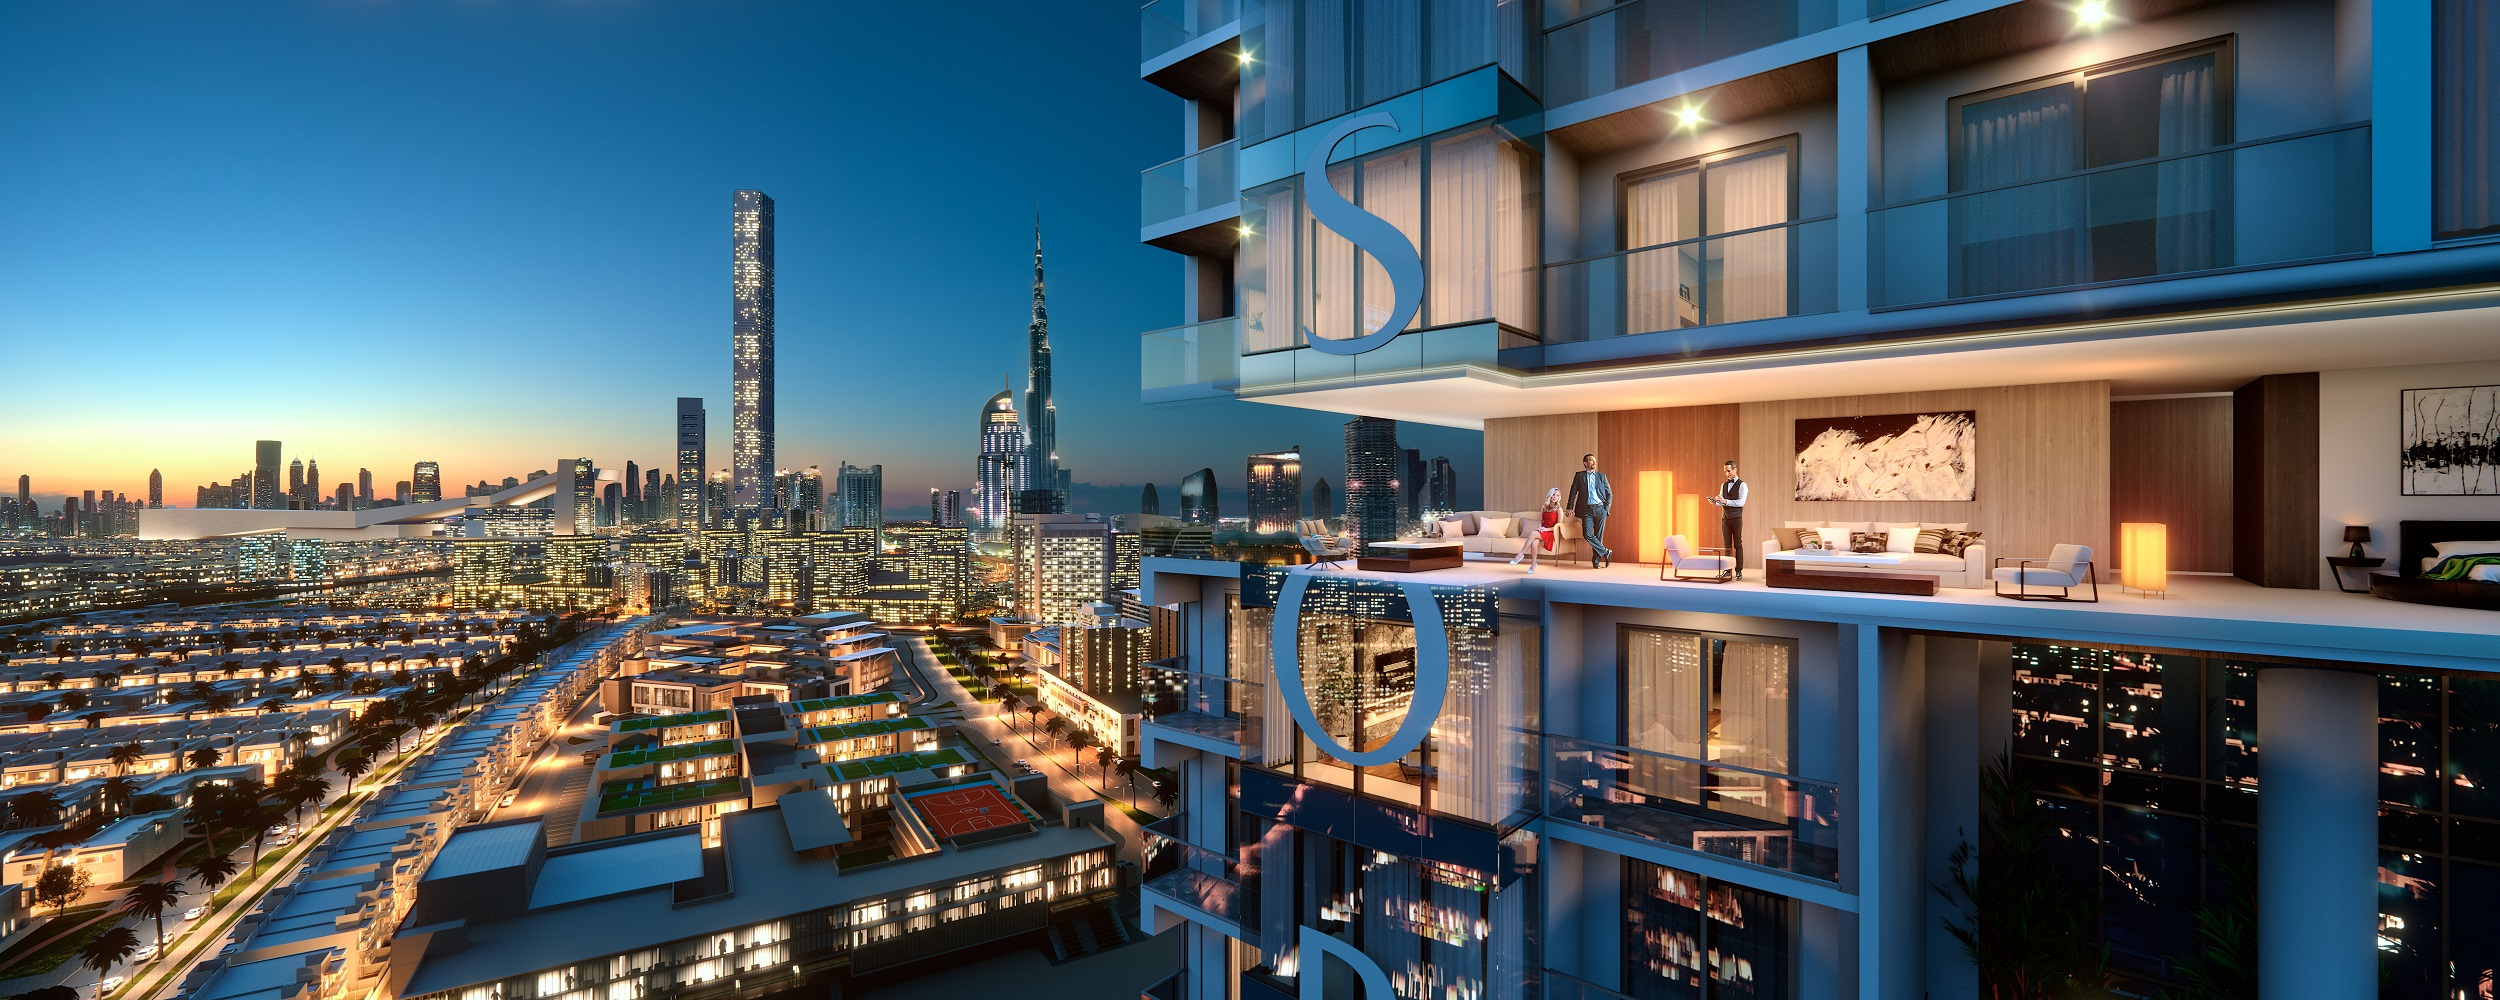 Sobha Realty To Showcase Flagship Master Development Sobha Hartland At Cityscape Global 2019 Construction Business News Middle East